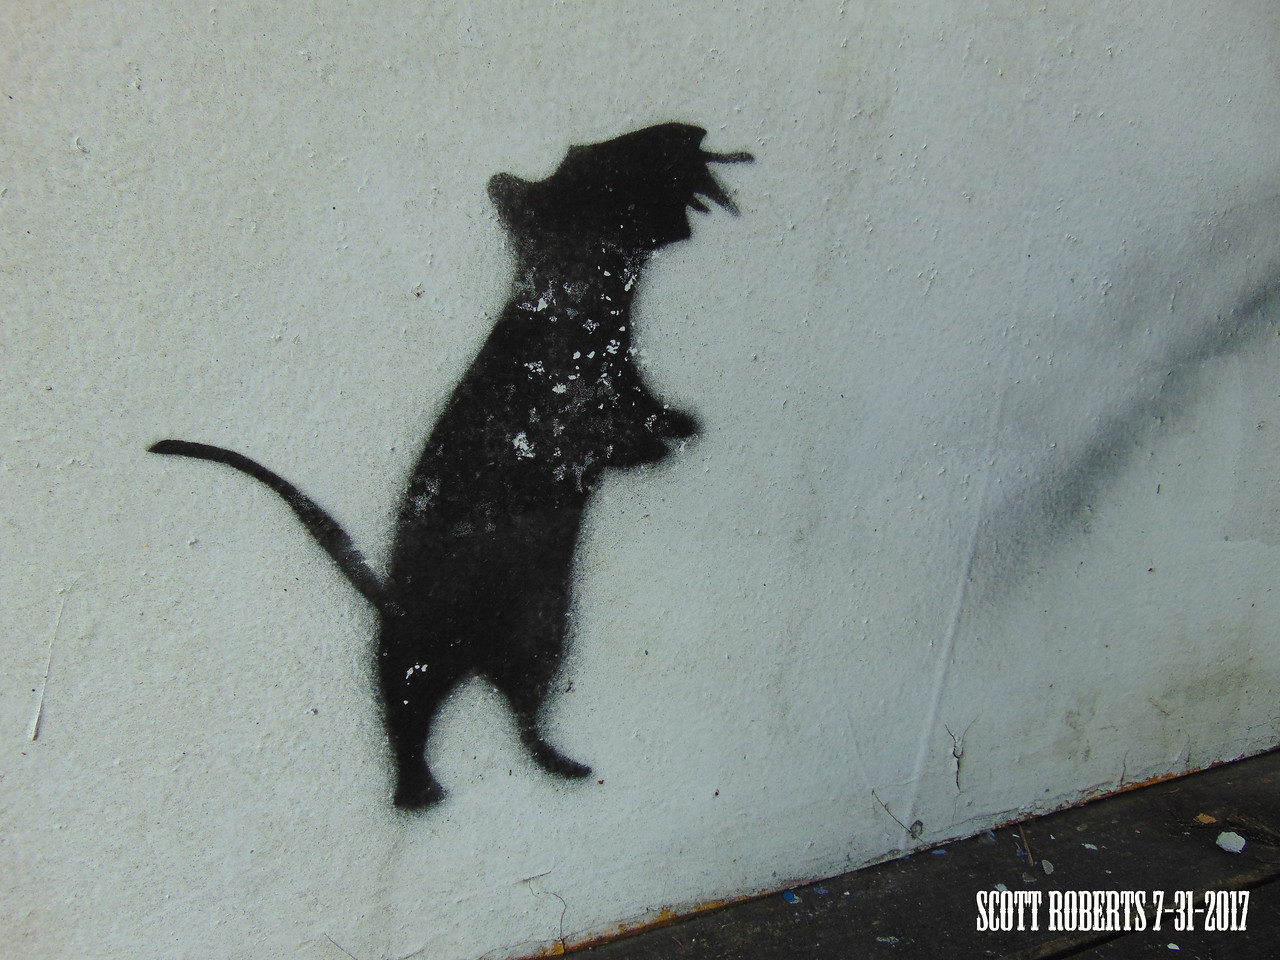 Someone must carry around a cut-out templet for those moments when they feel the need to make a rat graphitti.